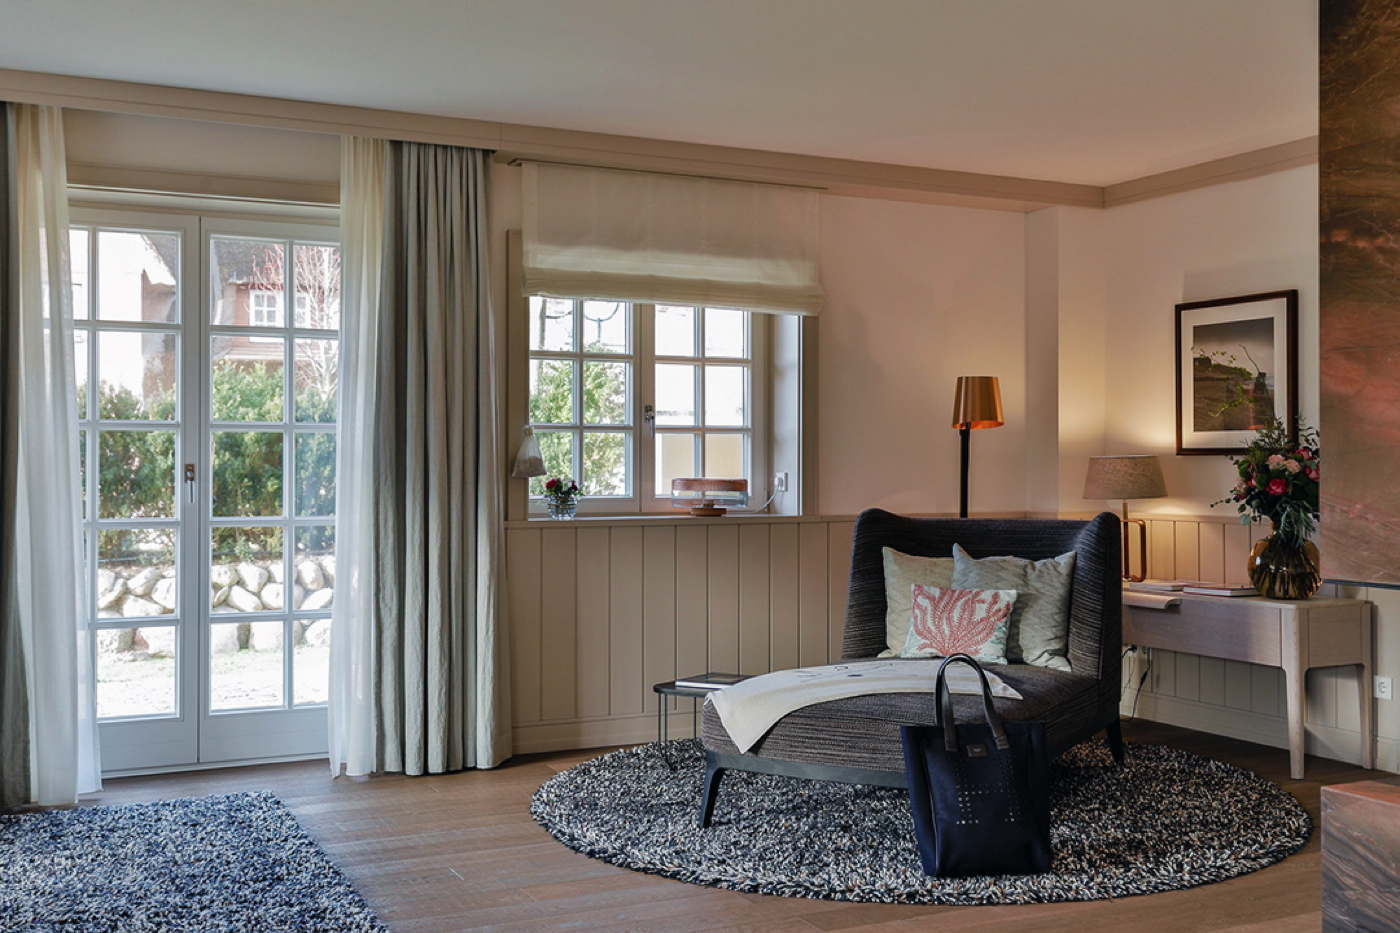 Holiday villa in 5 hotel resort Sylt with Spa & Pool at